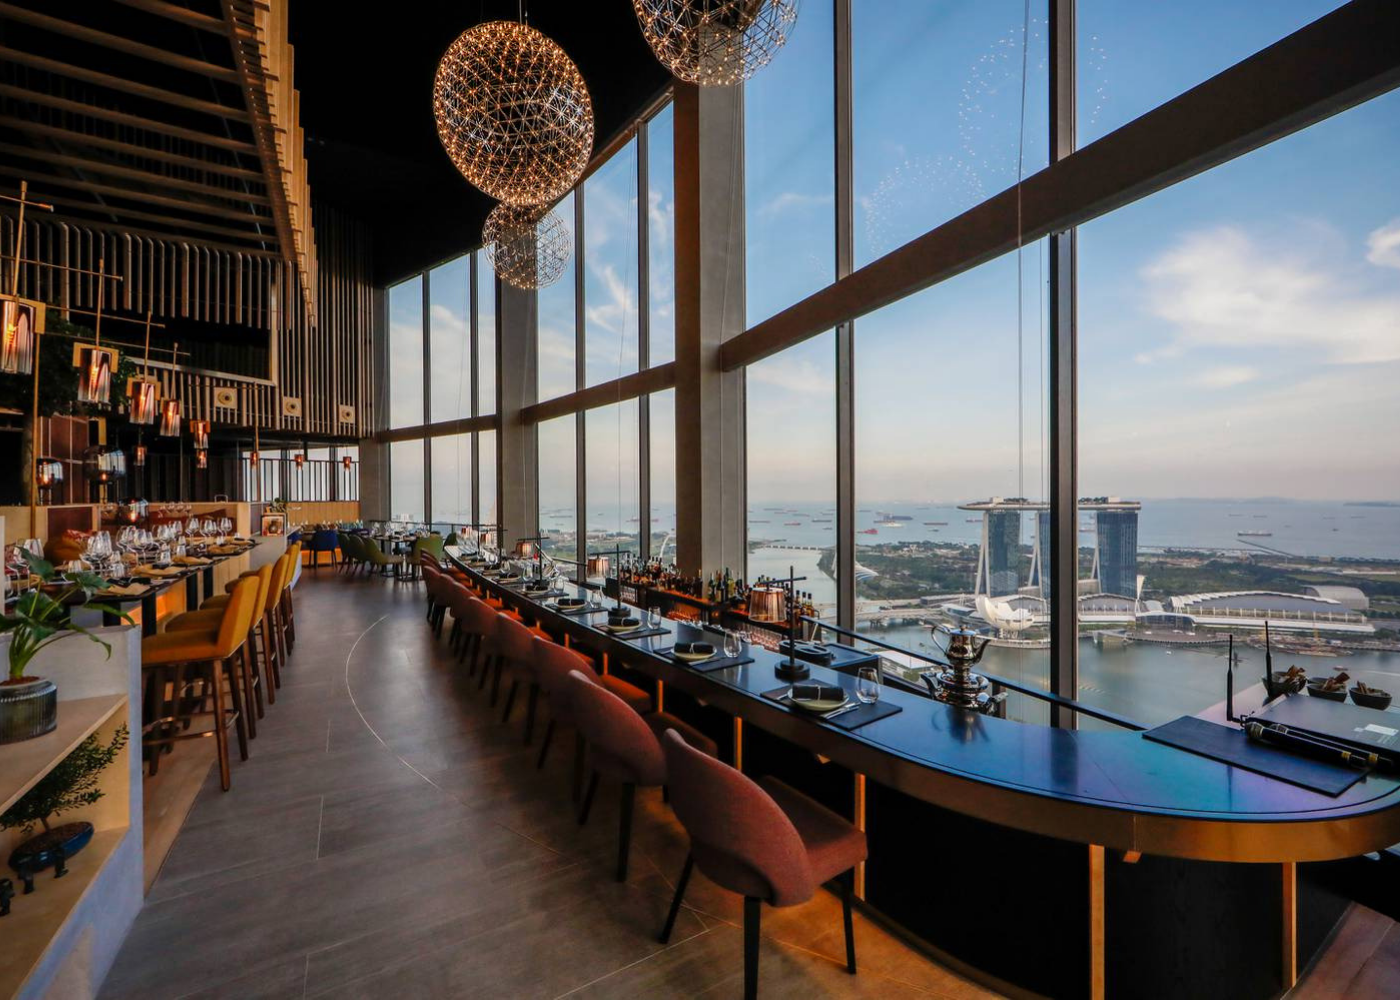 Enjoy a drink, 70 floors up at Skai Bar